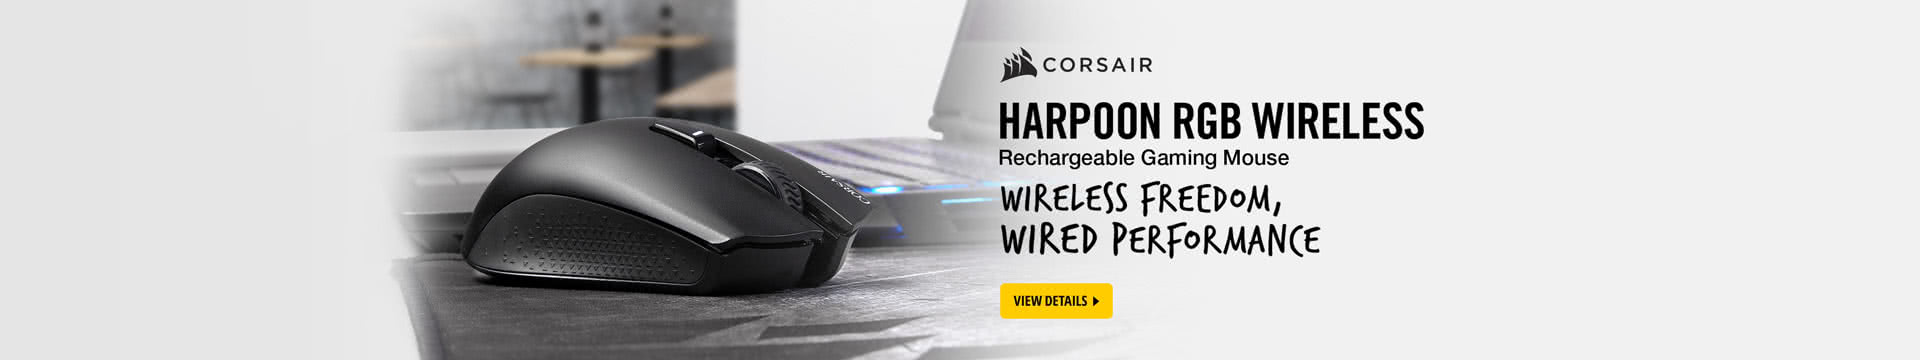 Harpoon RGB Wireless